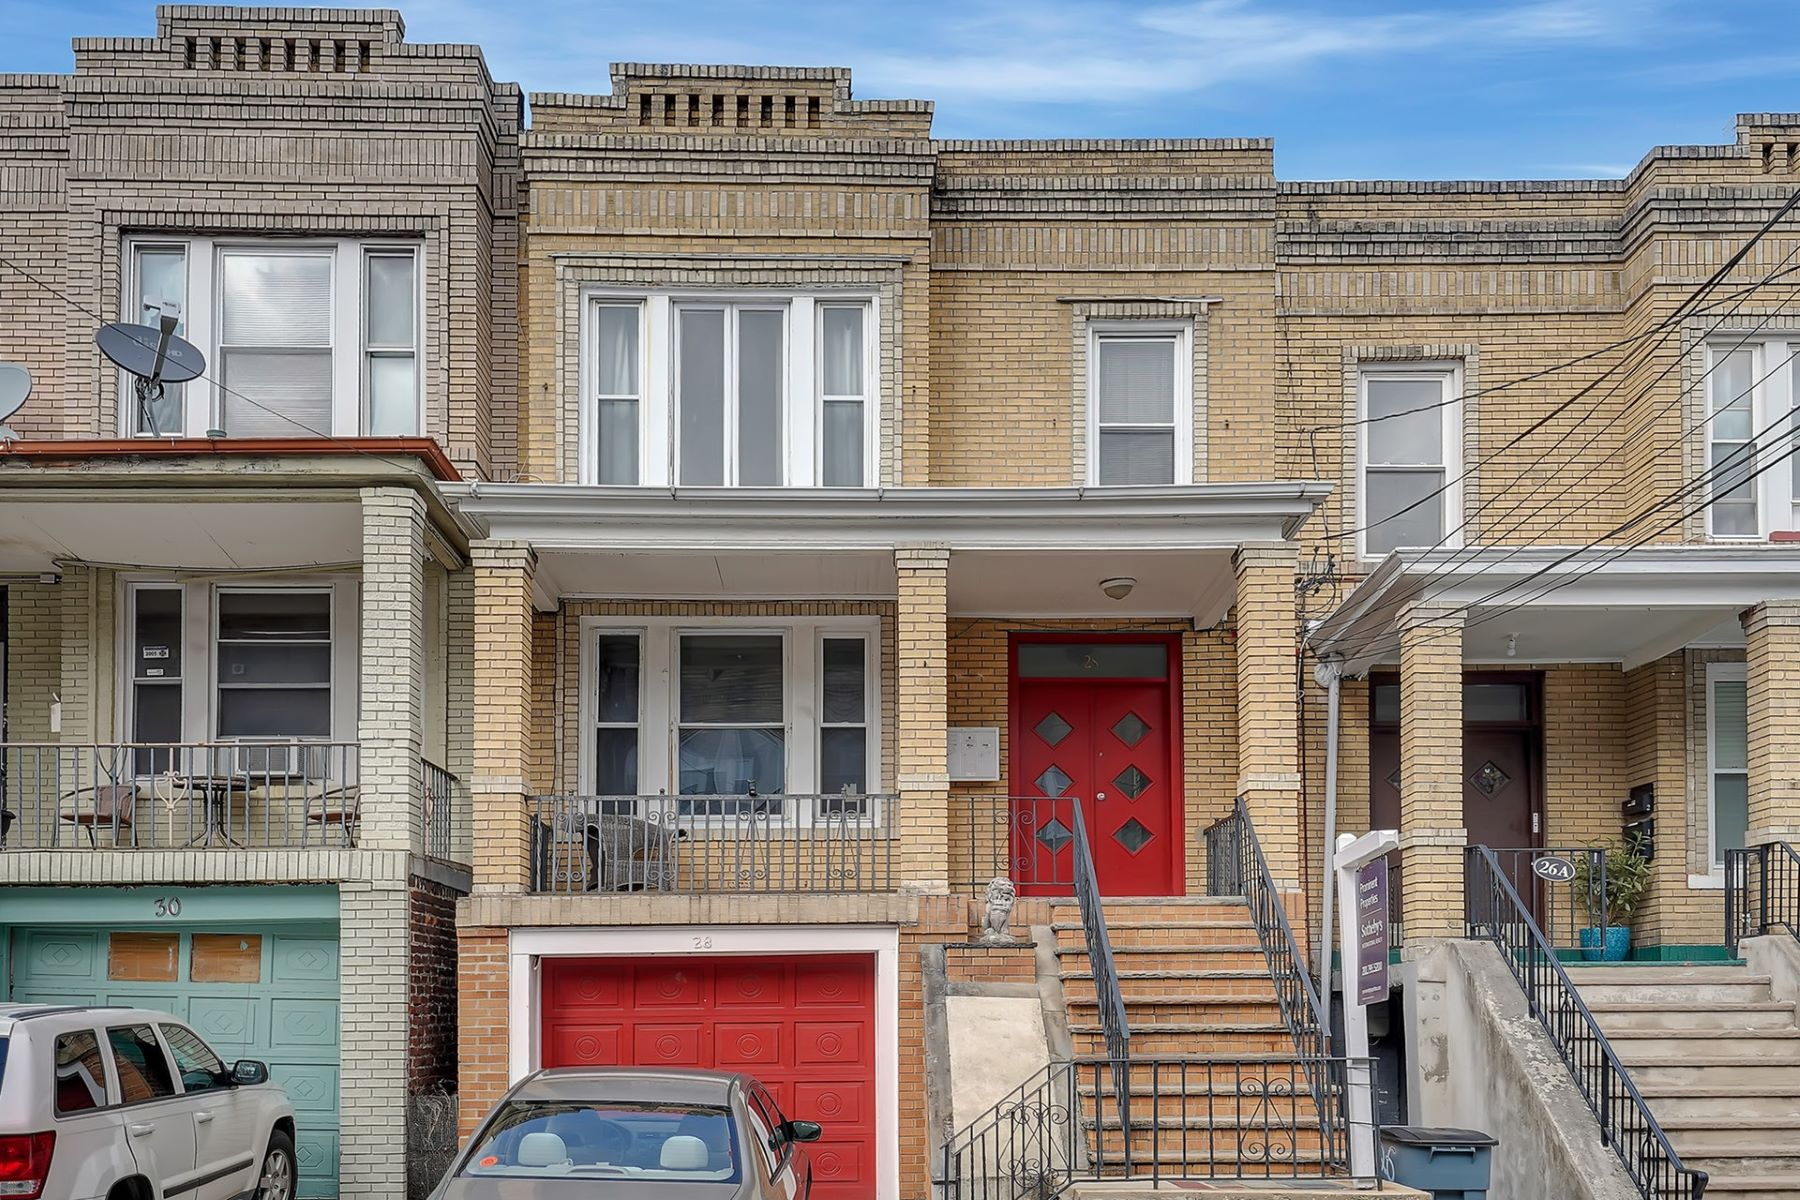 Multi-Family Homes for Sale at Charming 2 Family home located steps away from the most desirable street 28 64th Street West New York, New Jersey 07093 United States